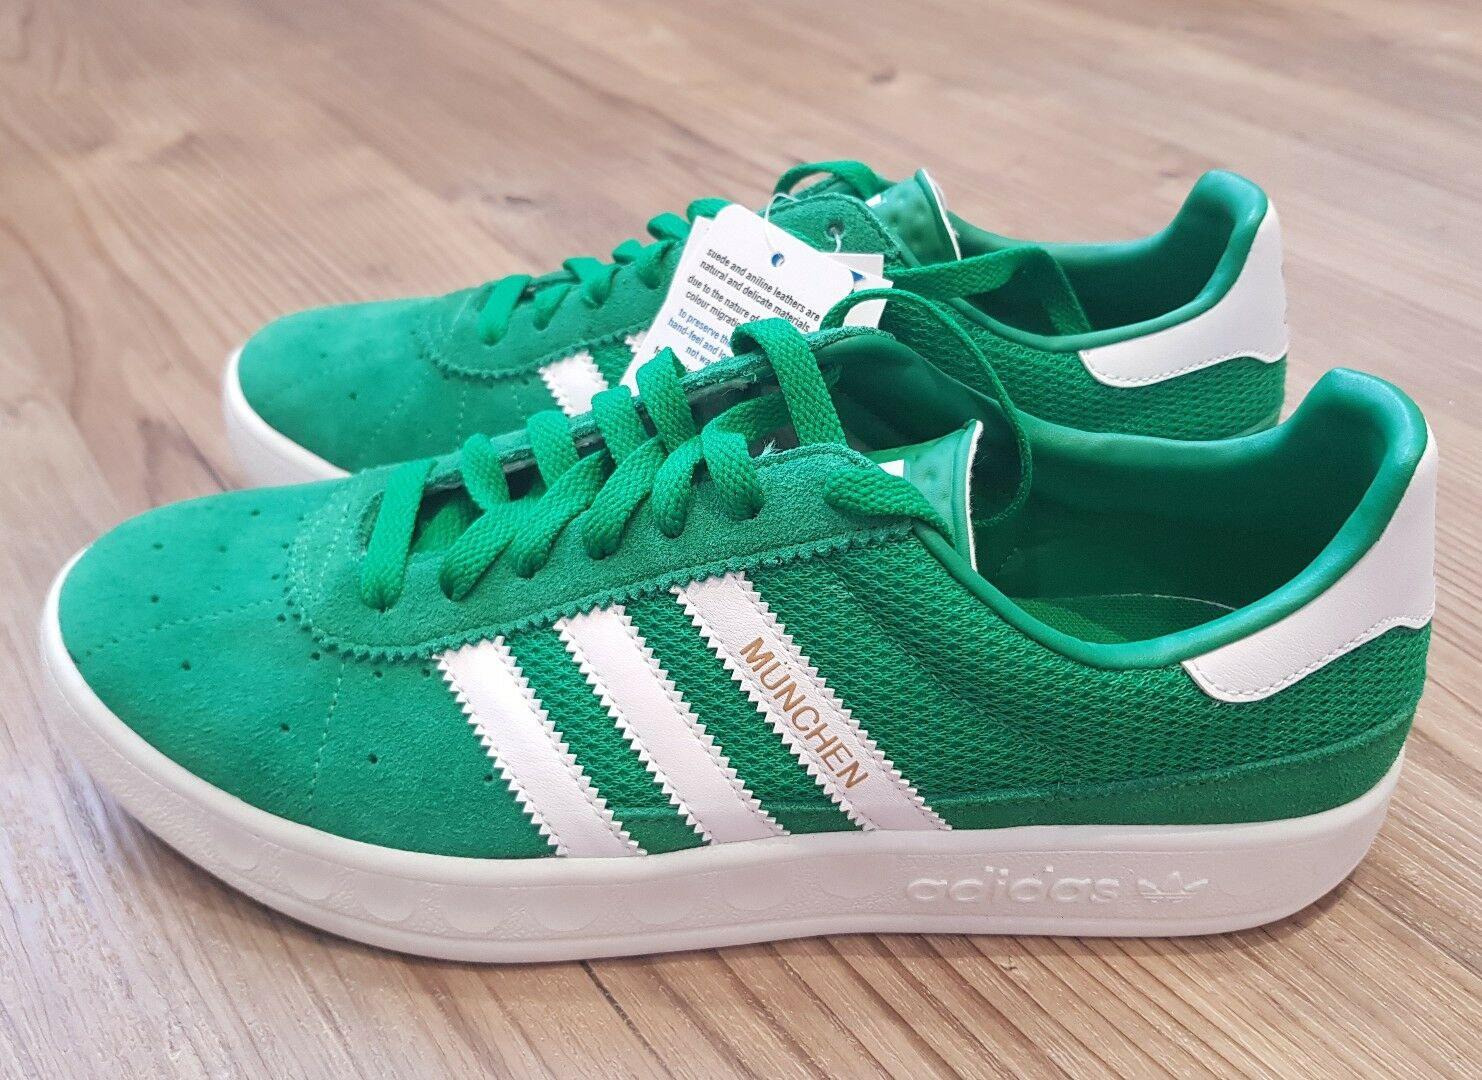 Adidas Originals Munchen trainersTaille 9.5 brand new with box. Tags attached